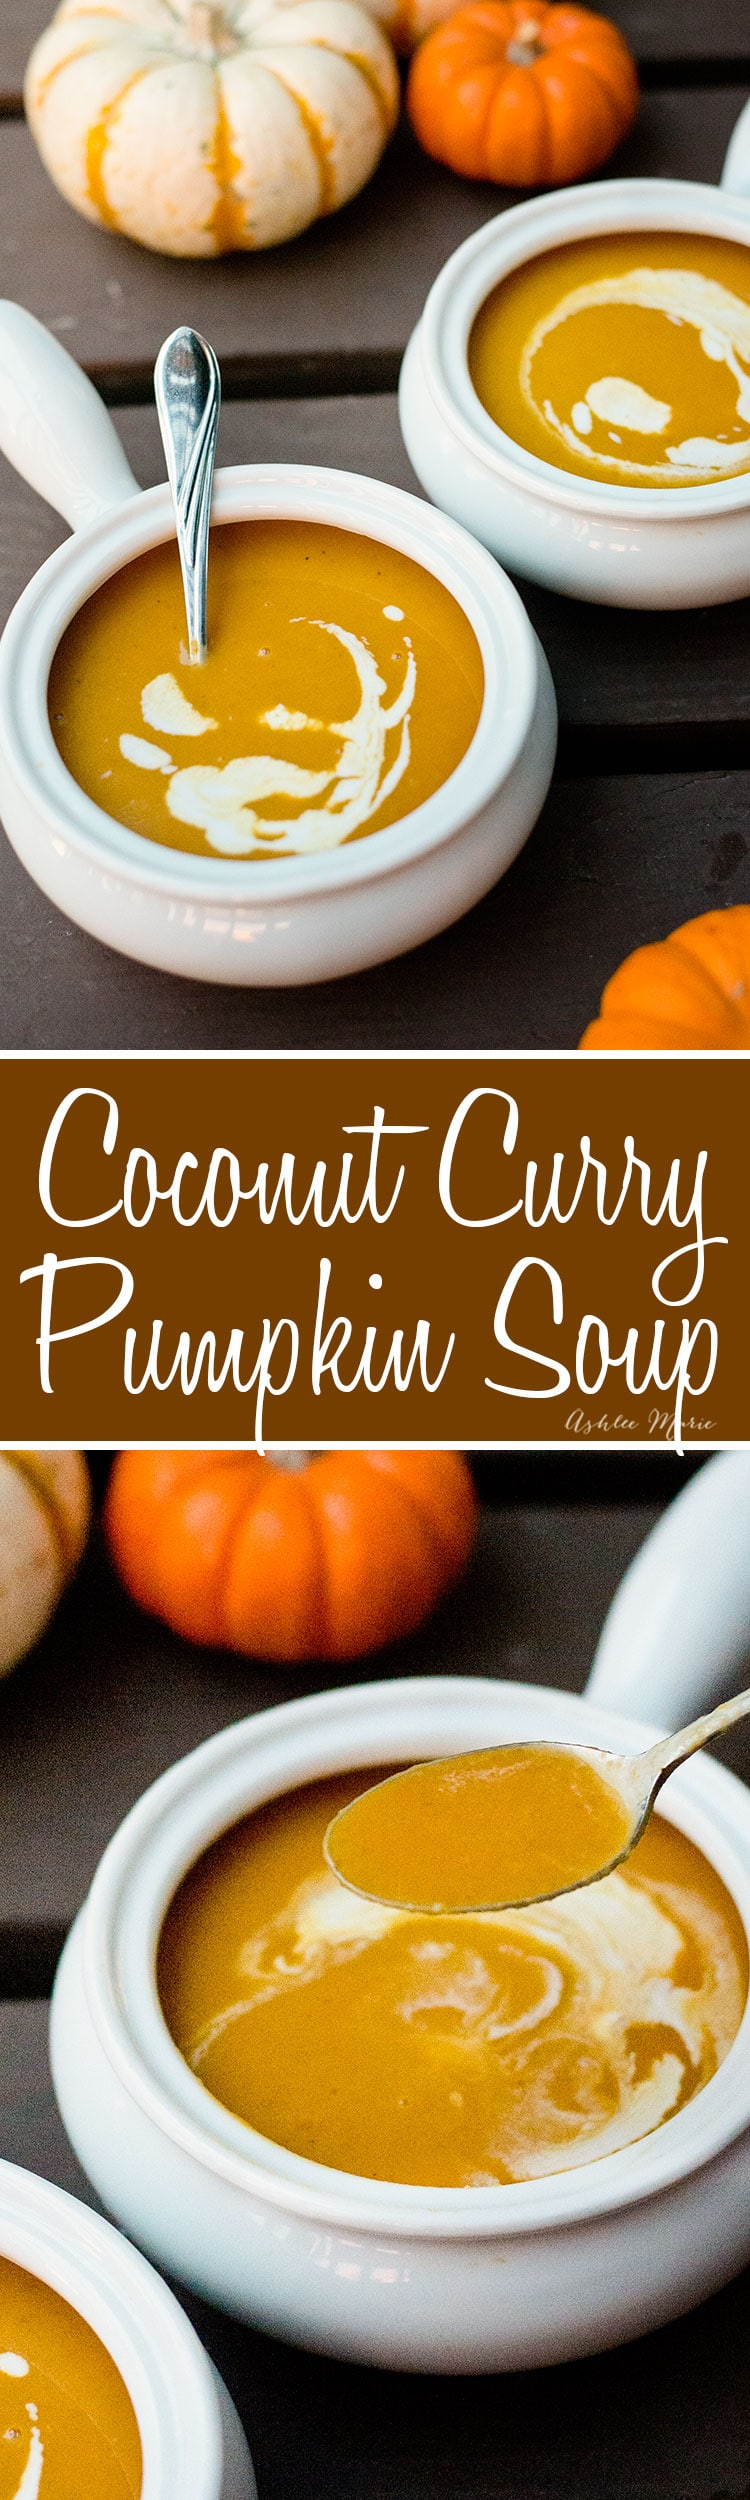 this pumpkin soup is easy to make and has some great flavors with the coconut milk and curry. A great start to any fall meal!